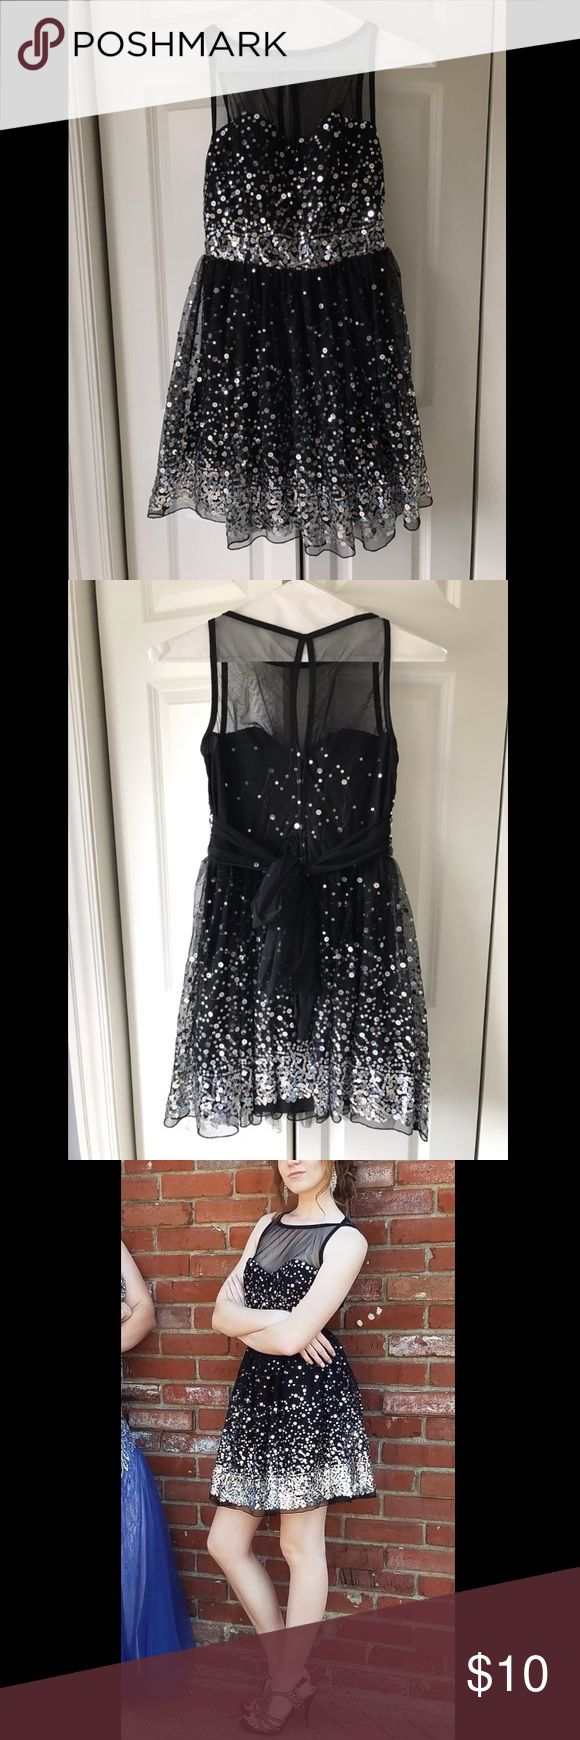 Short Black Formal Dress The tag says it is a Large and it fits a dress size 2, covered in sequins, from Rue 21, just want a couple bucks for it! Rue 21 Dresses Prom